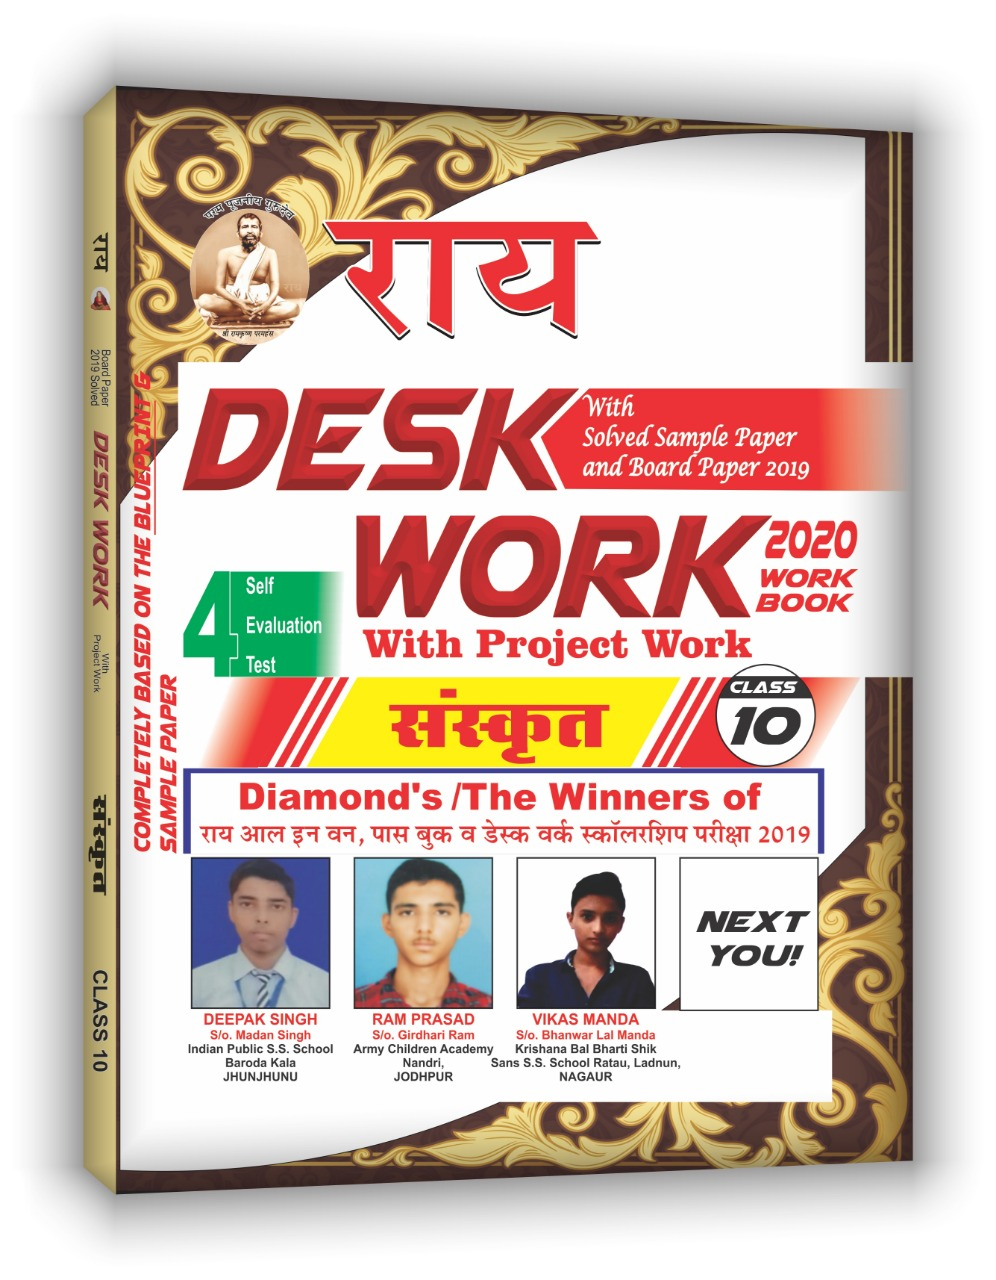 Rai Desk Work 2020 Sanskrit Class 10th Hindi Medium with free Scholarship Exam Form( Blue Print , Board Paper 2019 Solved ,1 Board Sample Paper+ 9 Model Papers +4 Self Evaluation Papers )